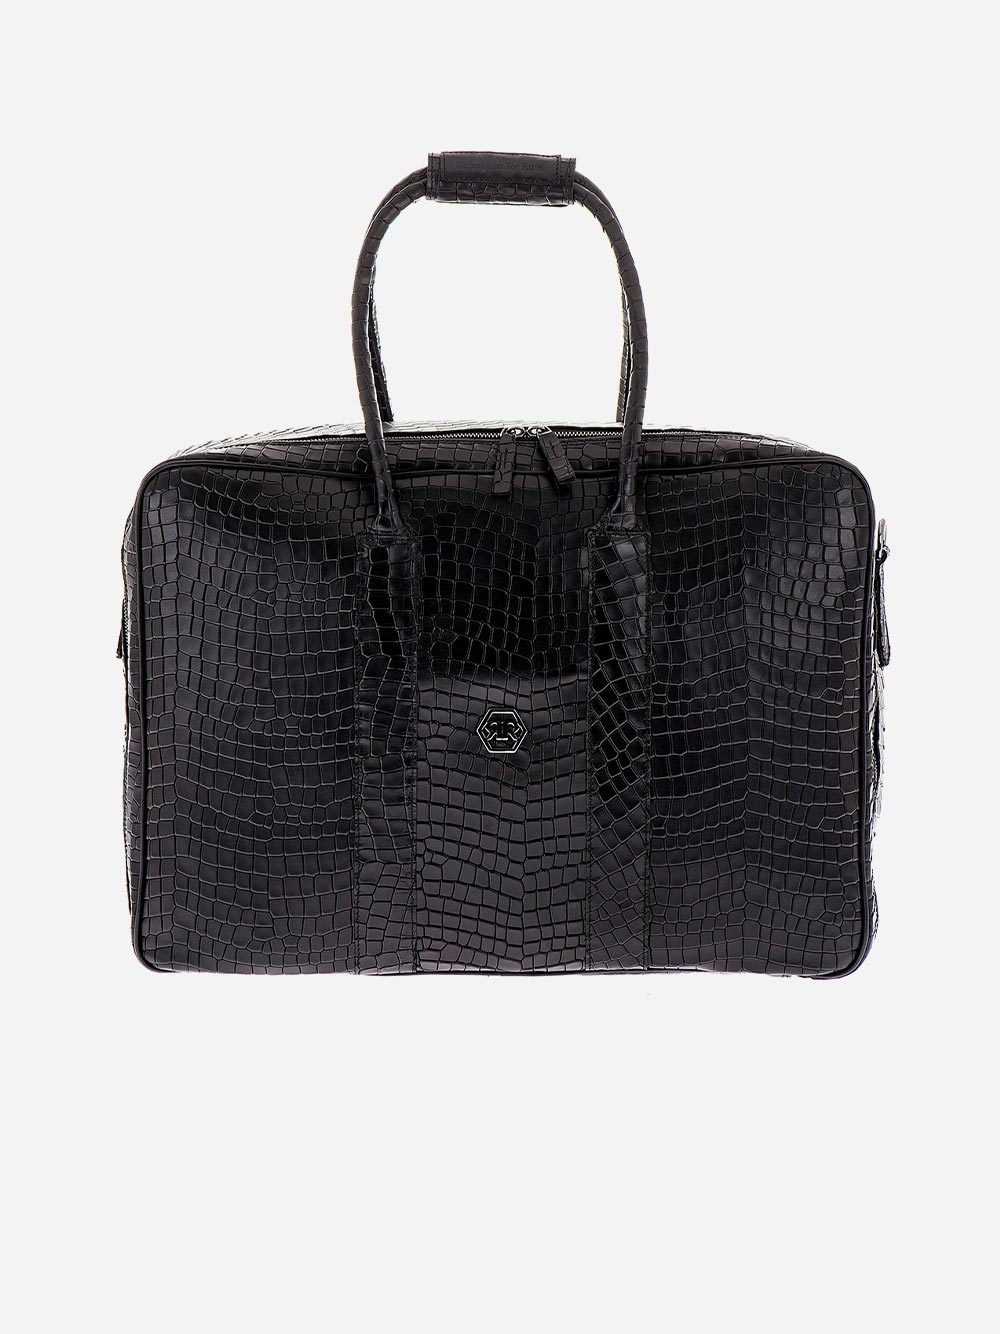 Black Croc Effect Weekend Bag